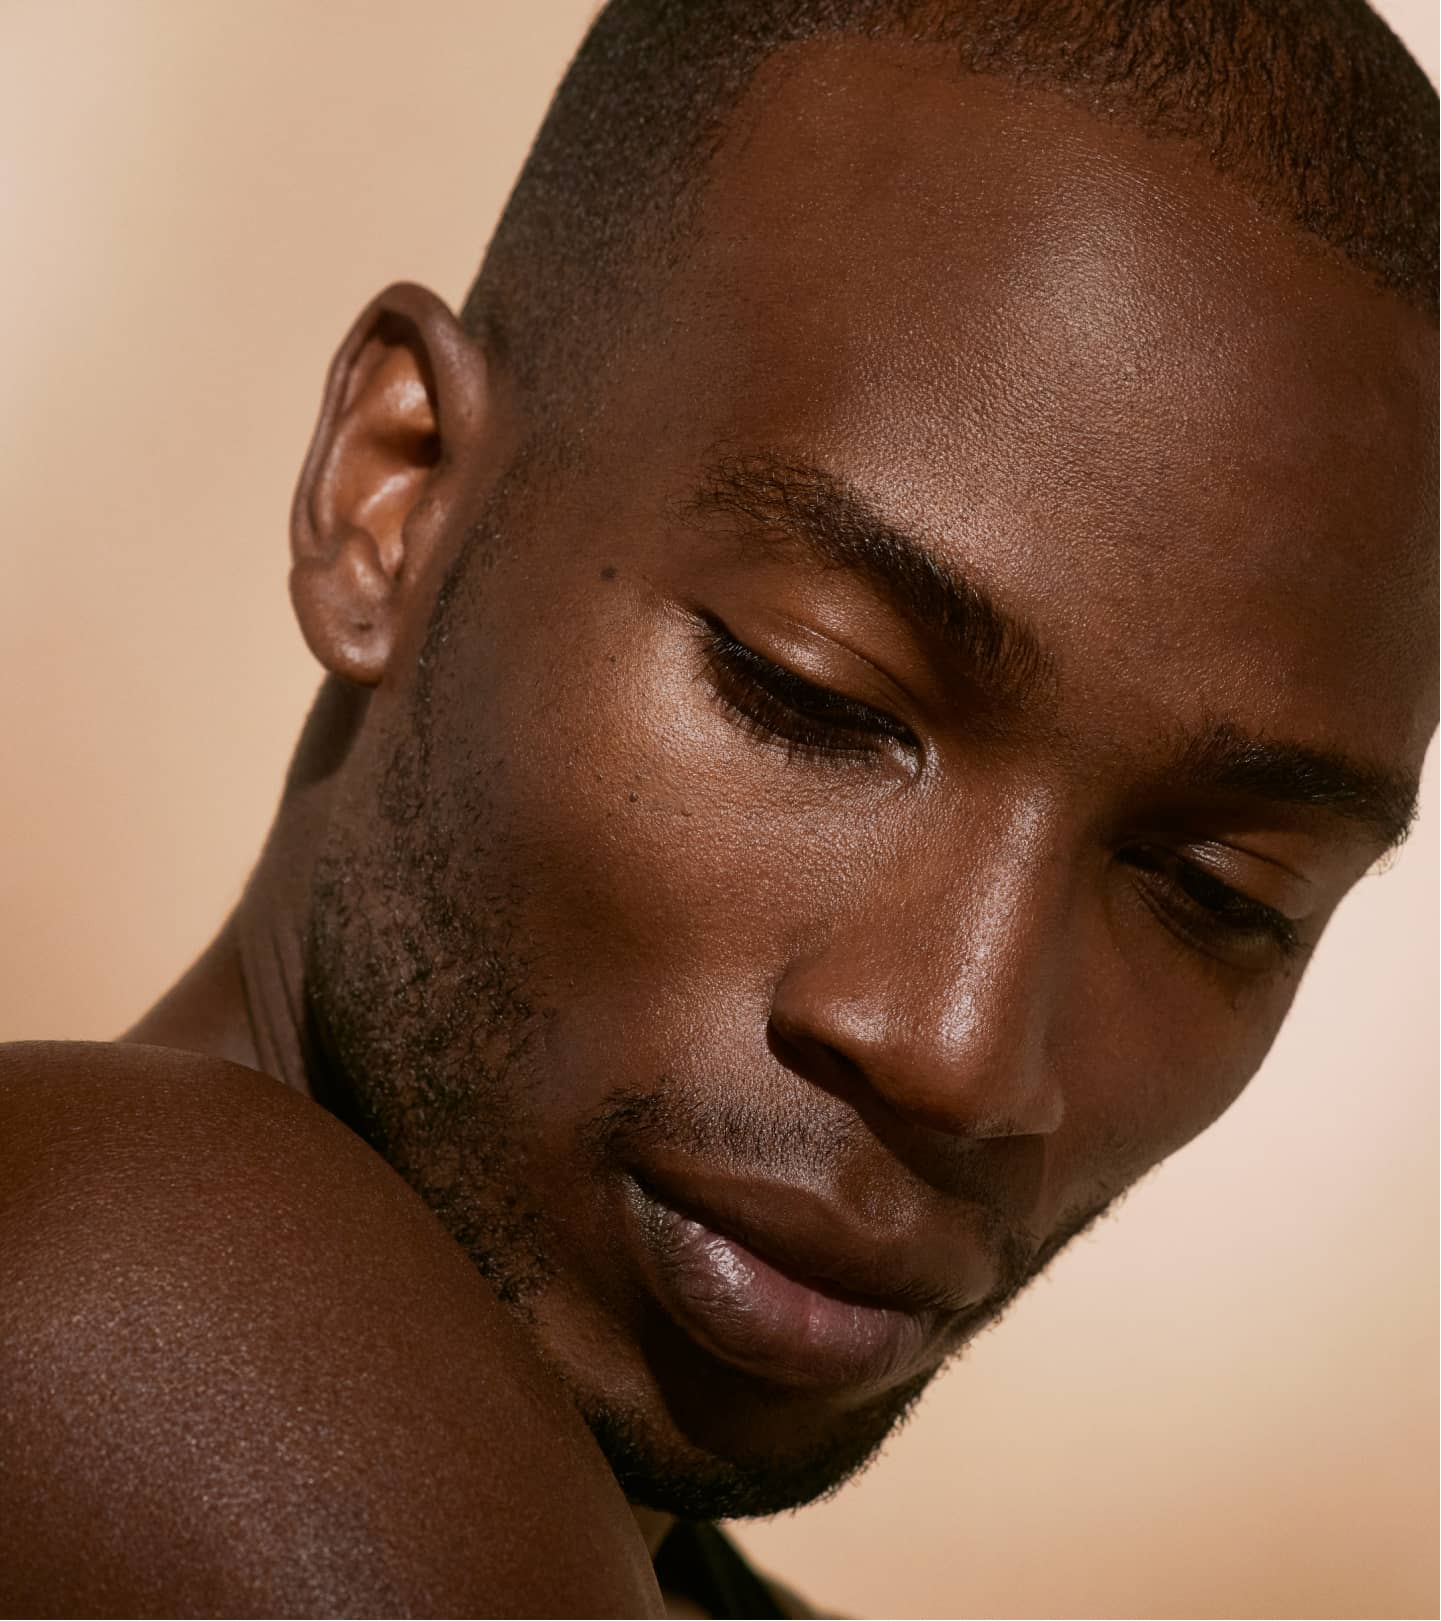 Man looking softly over his shoulder